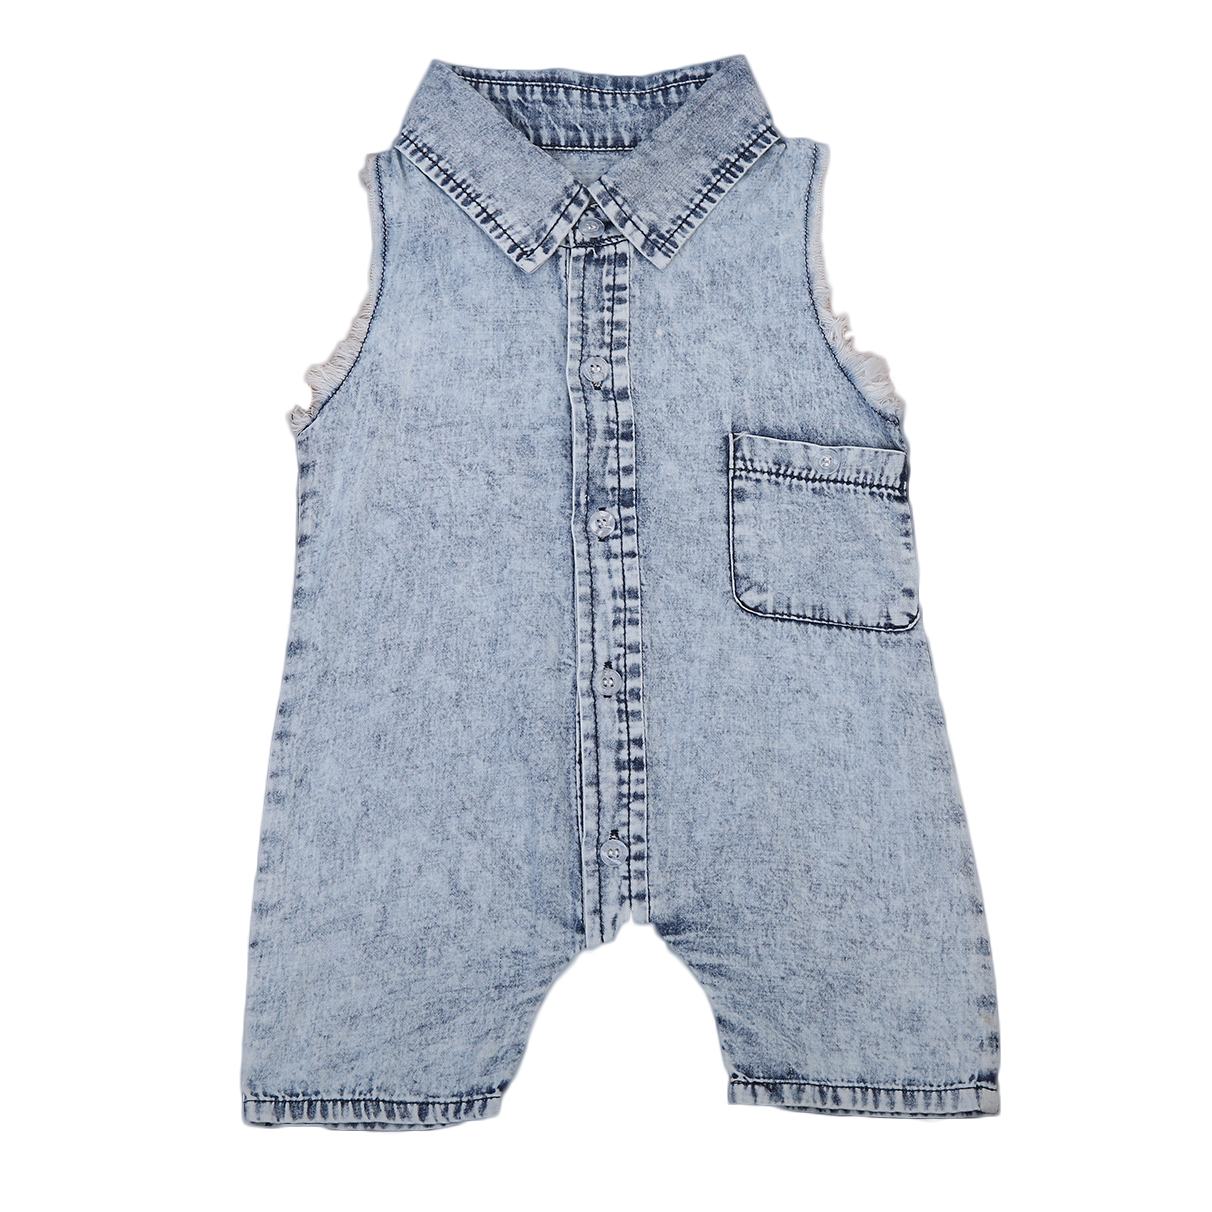 2017 Denim Romper Newborn Baby Boy Girl Summer Sleeveless Pocket Clothes Toddler Kids Jumpsuit Sunsuit Children Clothing Outfits 2017 new adorable summer games infant newborn baby boy girl romper jumpsuit outfits clothes clothing